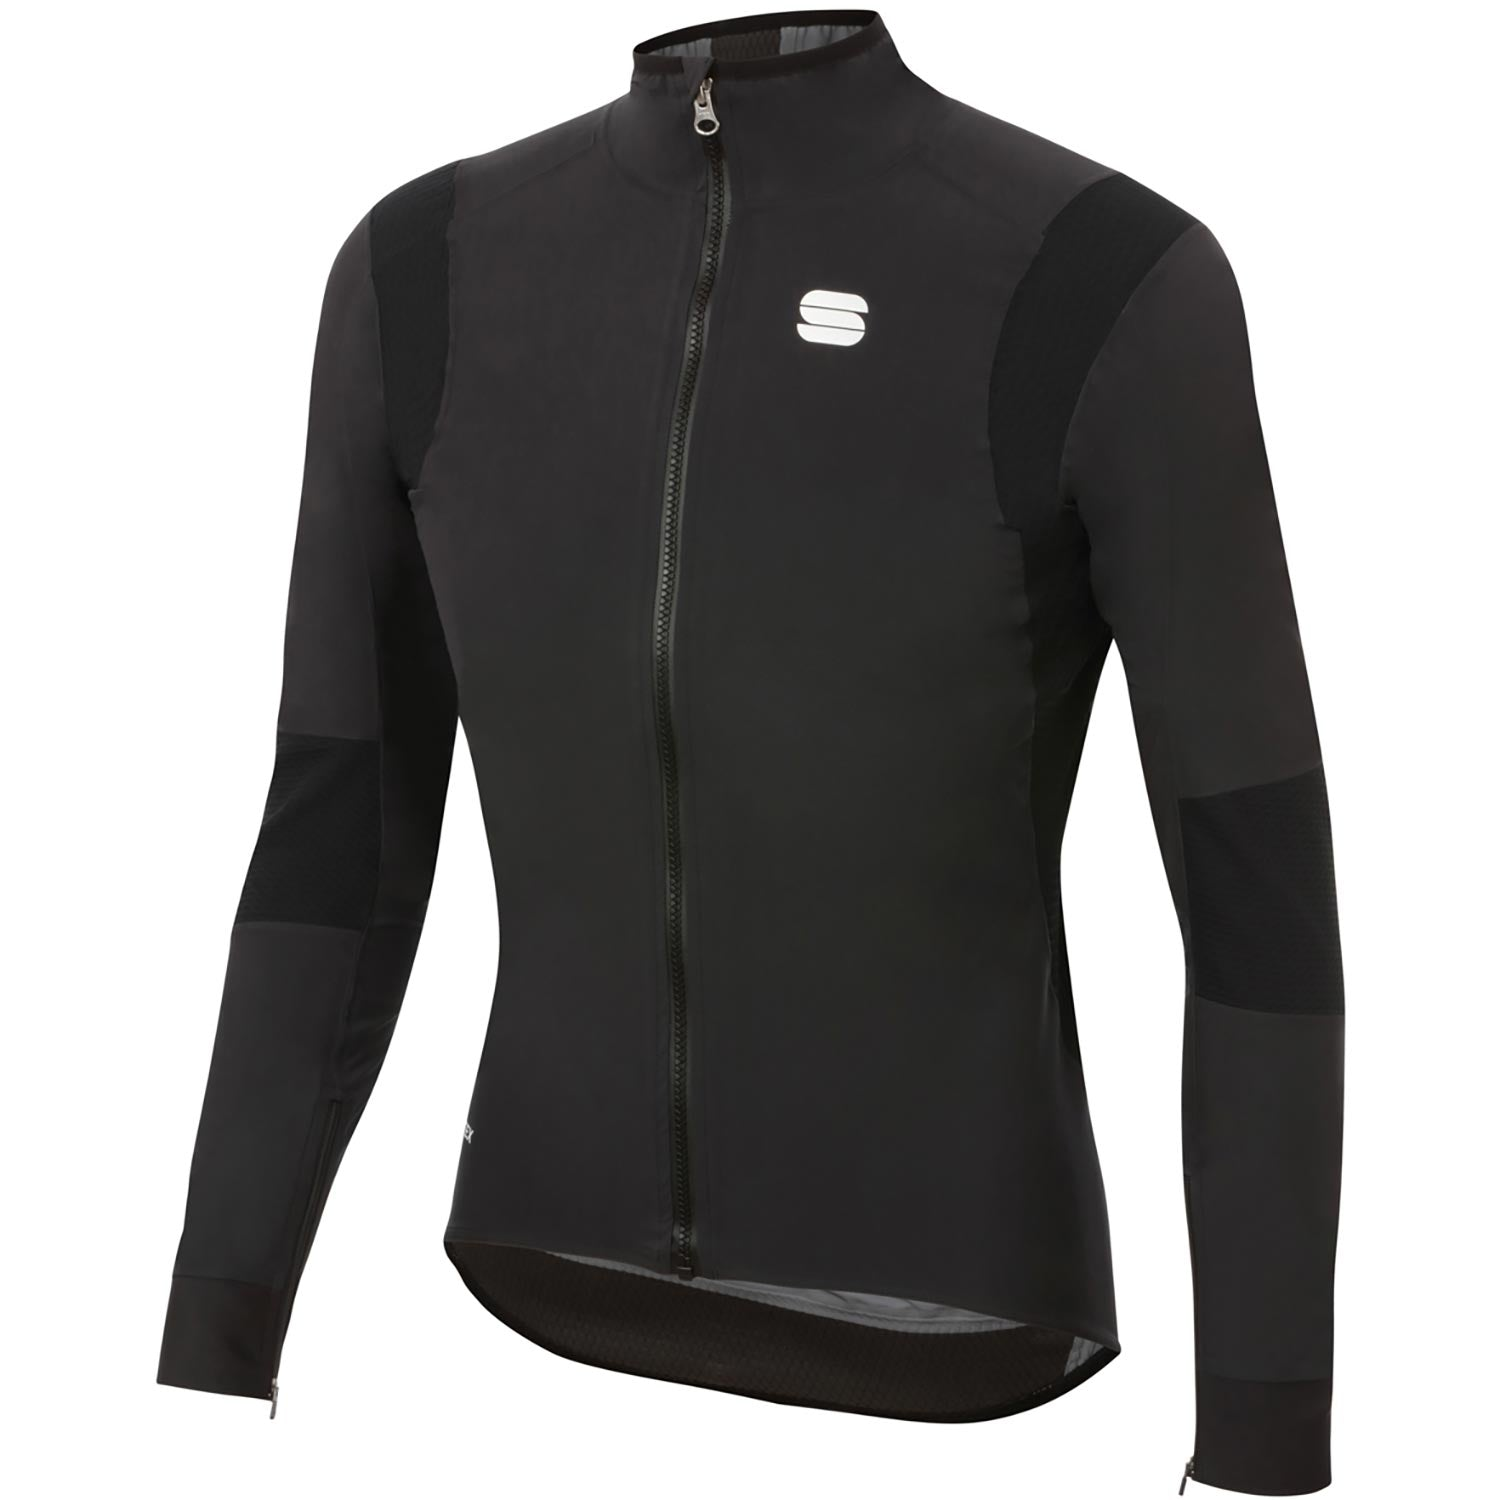 Sportful-Sportful Aqua Pro Jacket-Black-S-SF205180022-saddleback-elite-performance-cycling